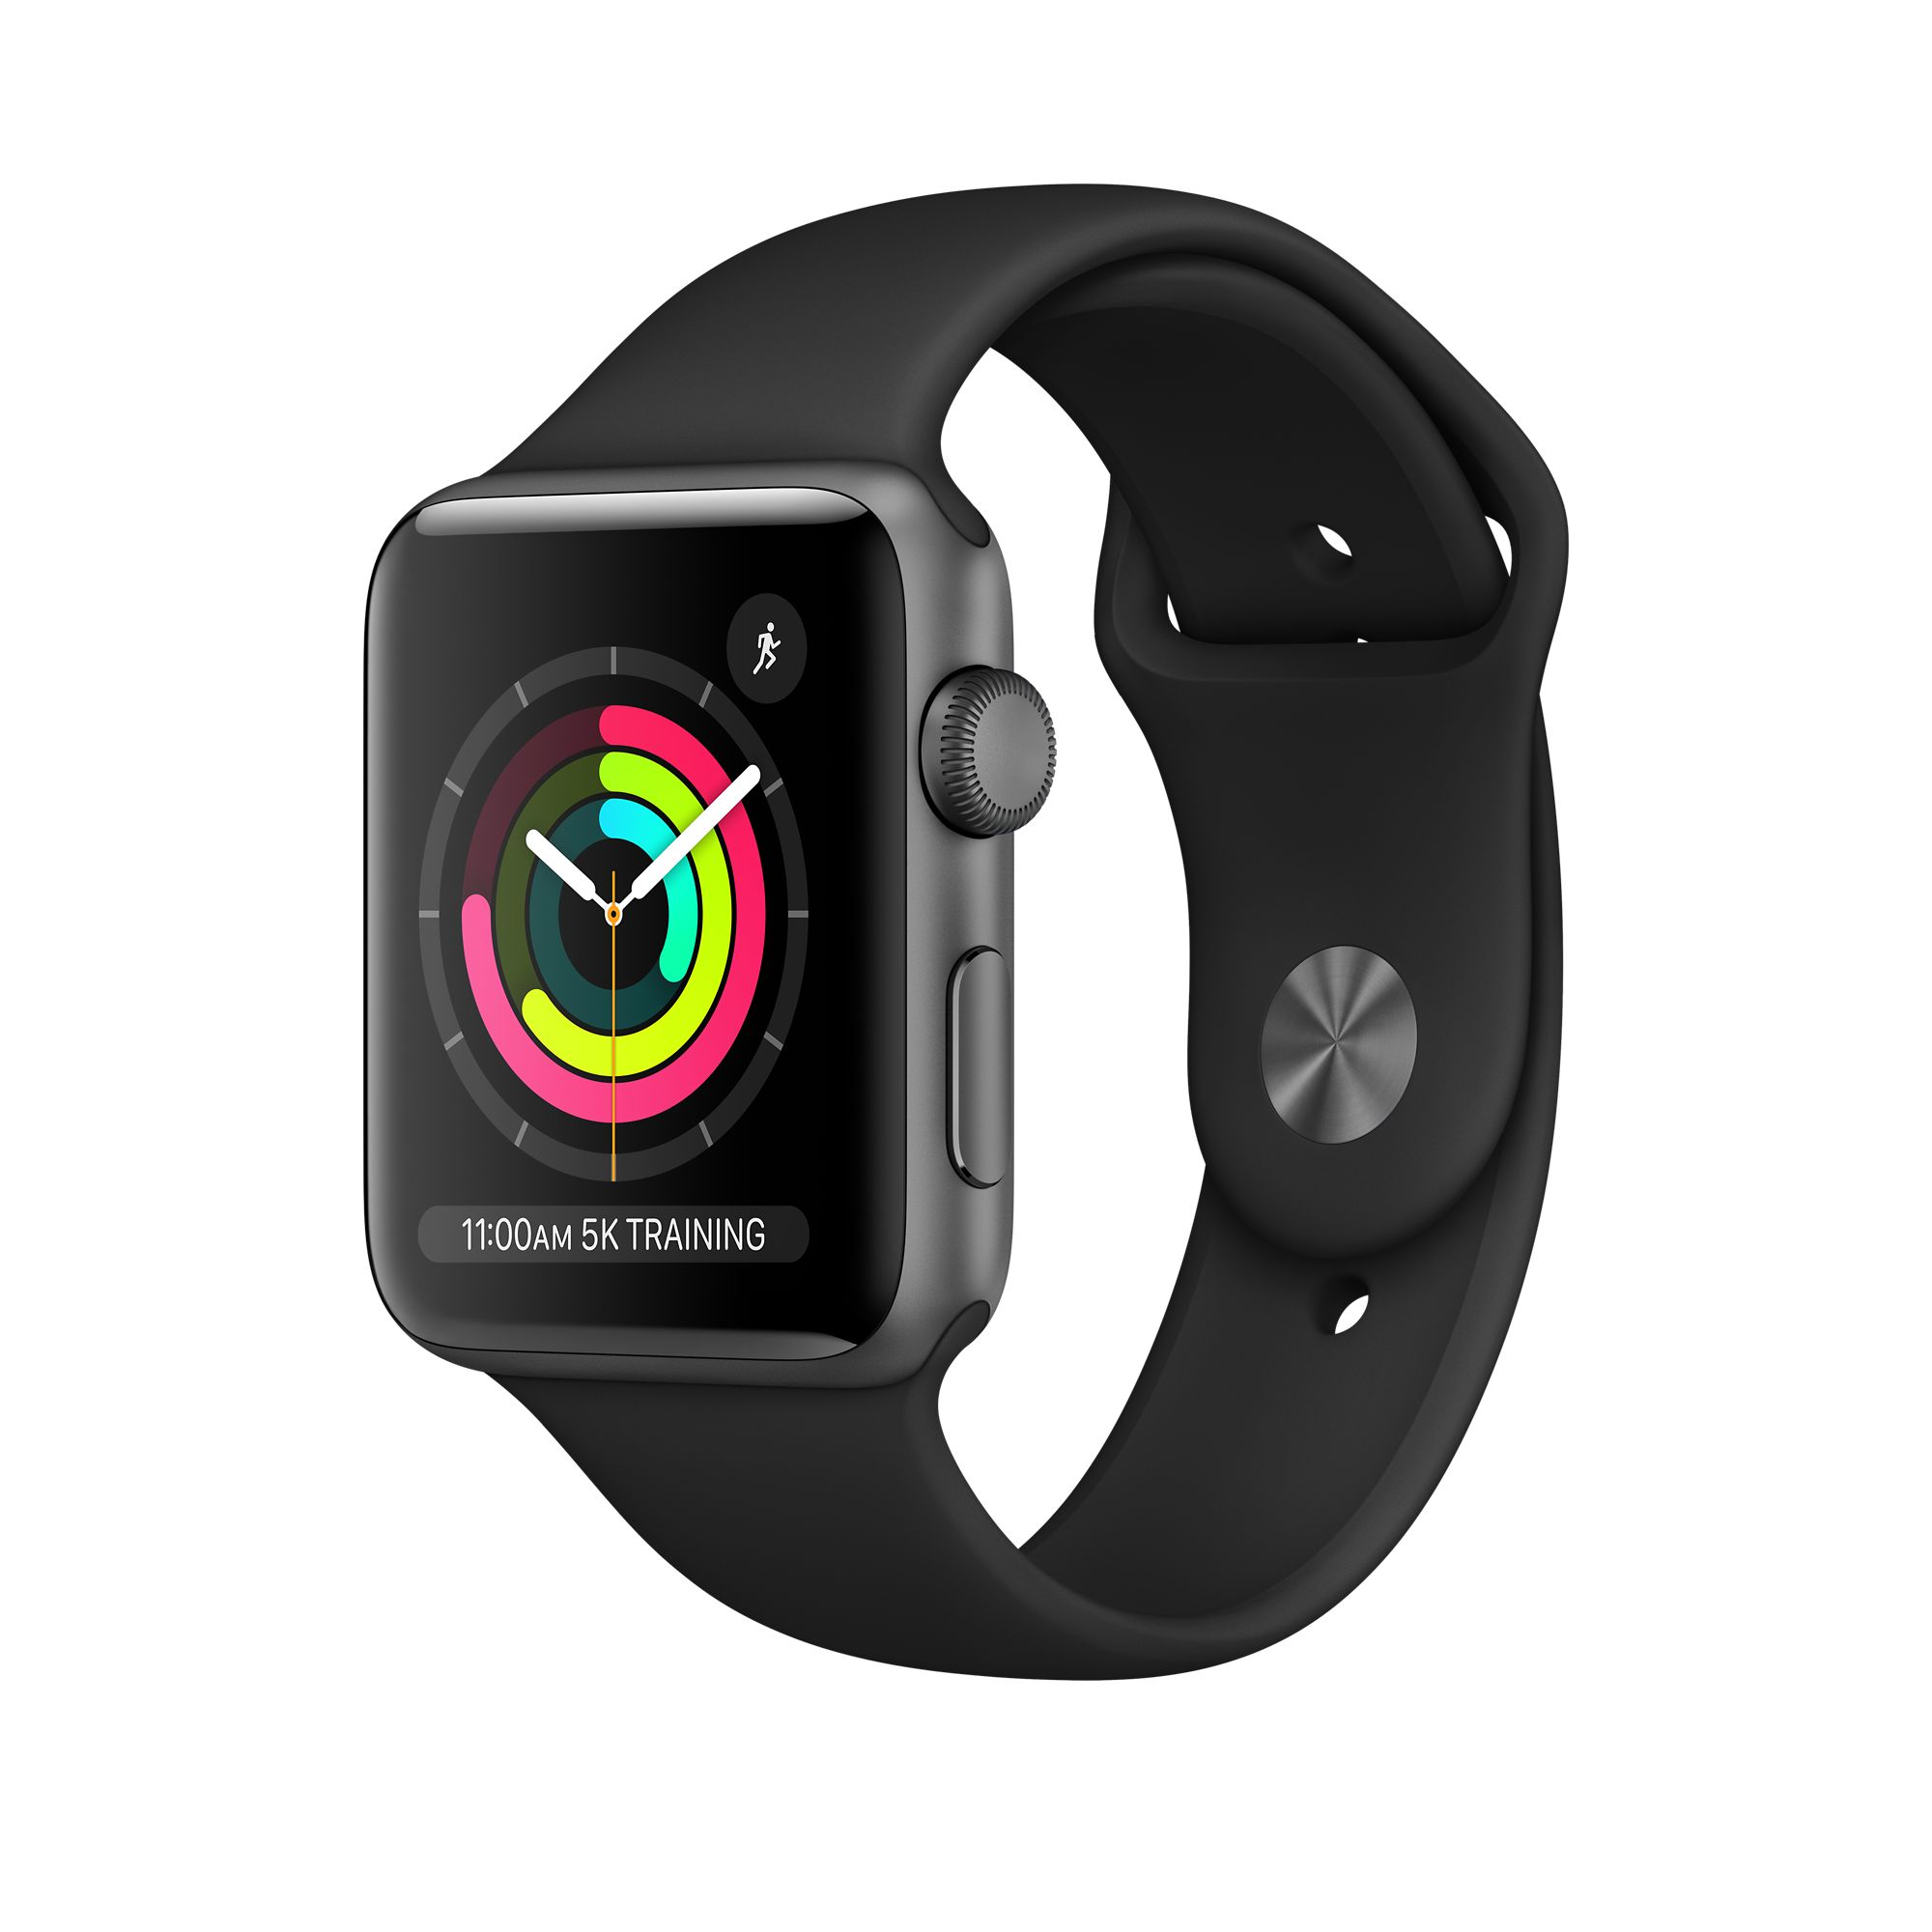 new styles e05b1 a5fbe Apple Watch Series 3 GPS, 38mm Space Gray Aluminum Case with Black Sport  Band